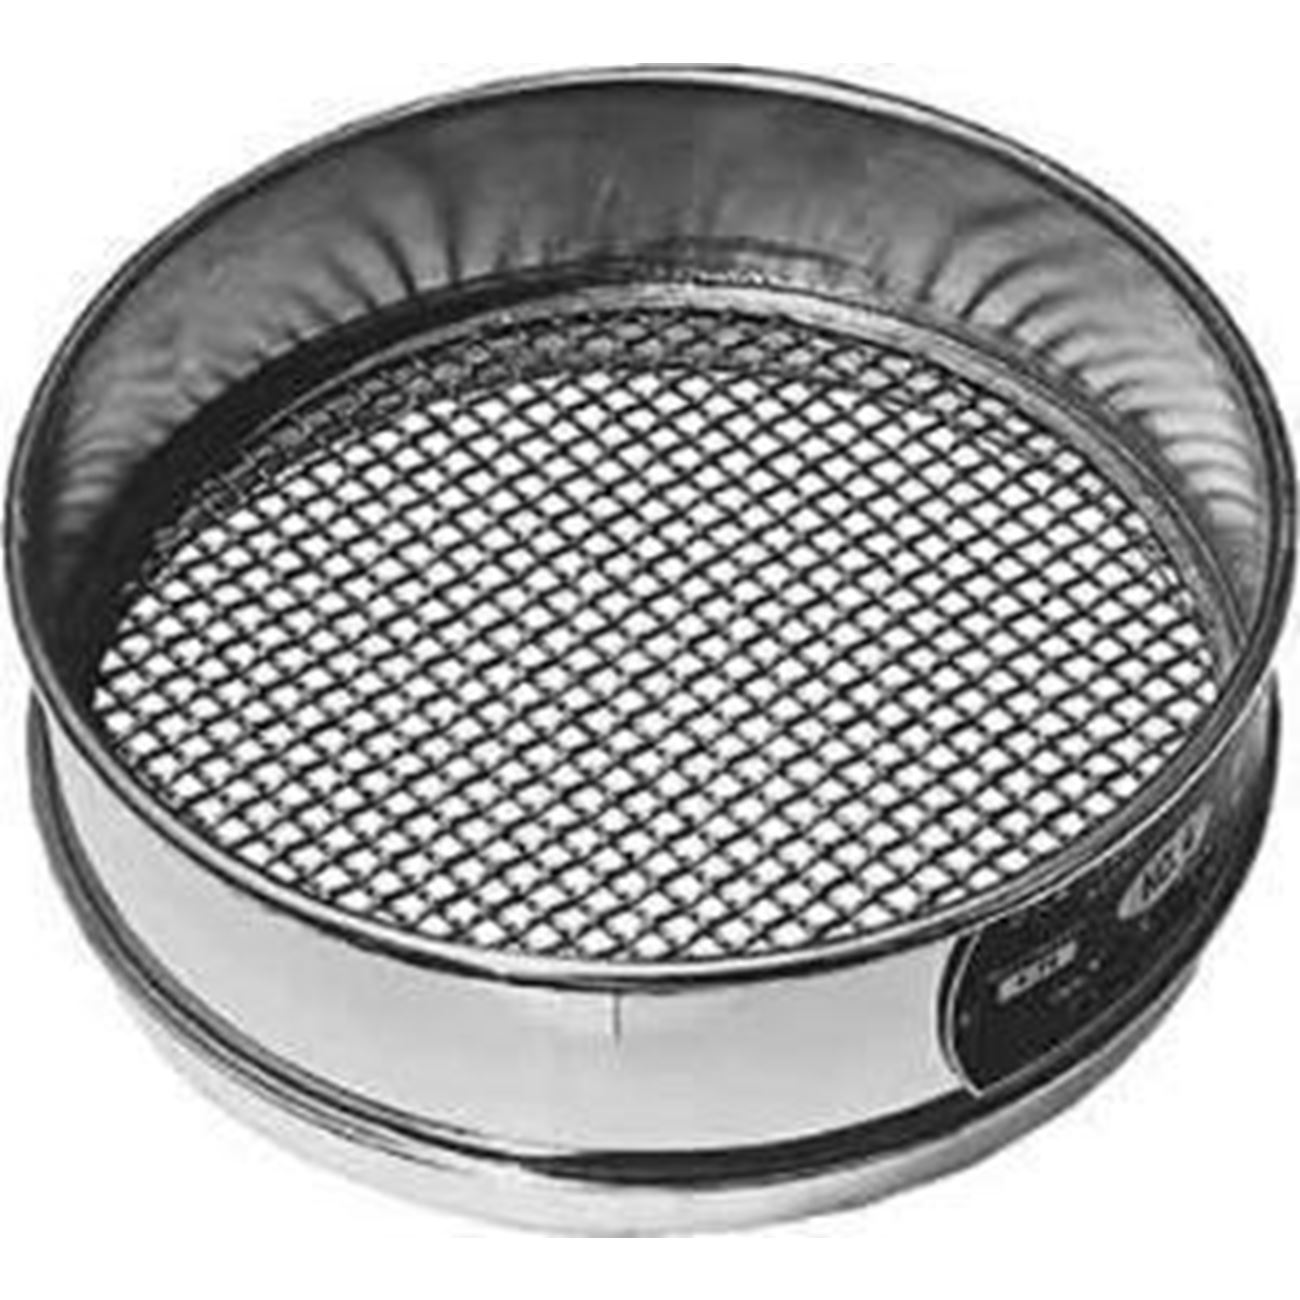 Sieve SS, 200mm X 50mm, 4 mm wire cloth, 5 mesh